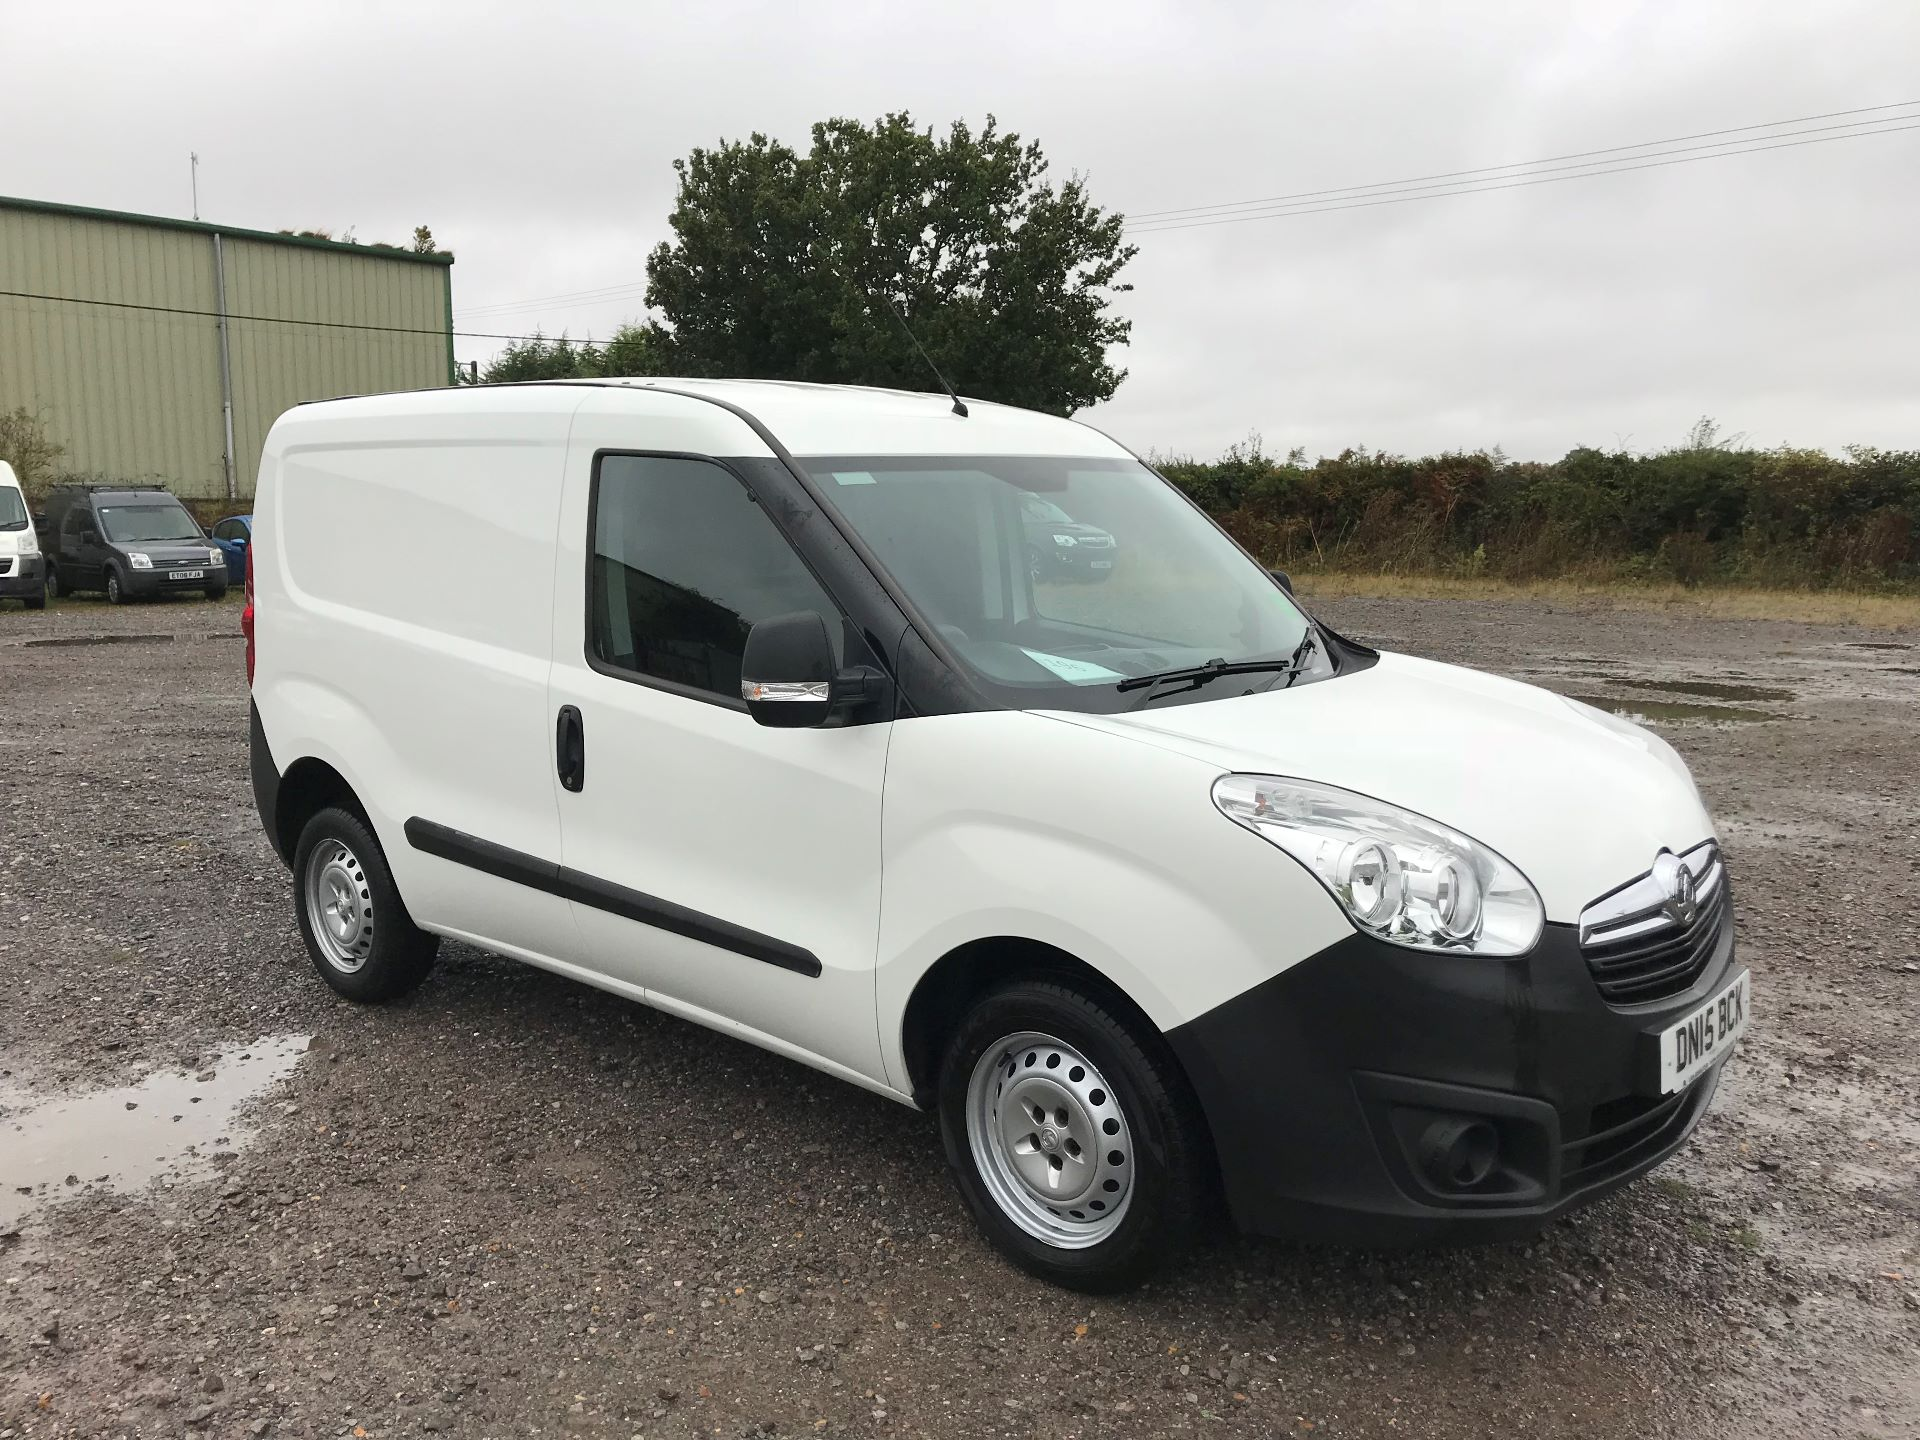 2015 Vauxhall Combo  L1 H1 2000 1.3 16V  EURO 5 (DN15BCK) Image 1